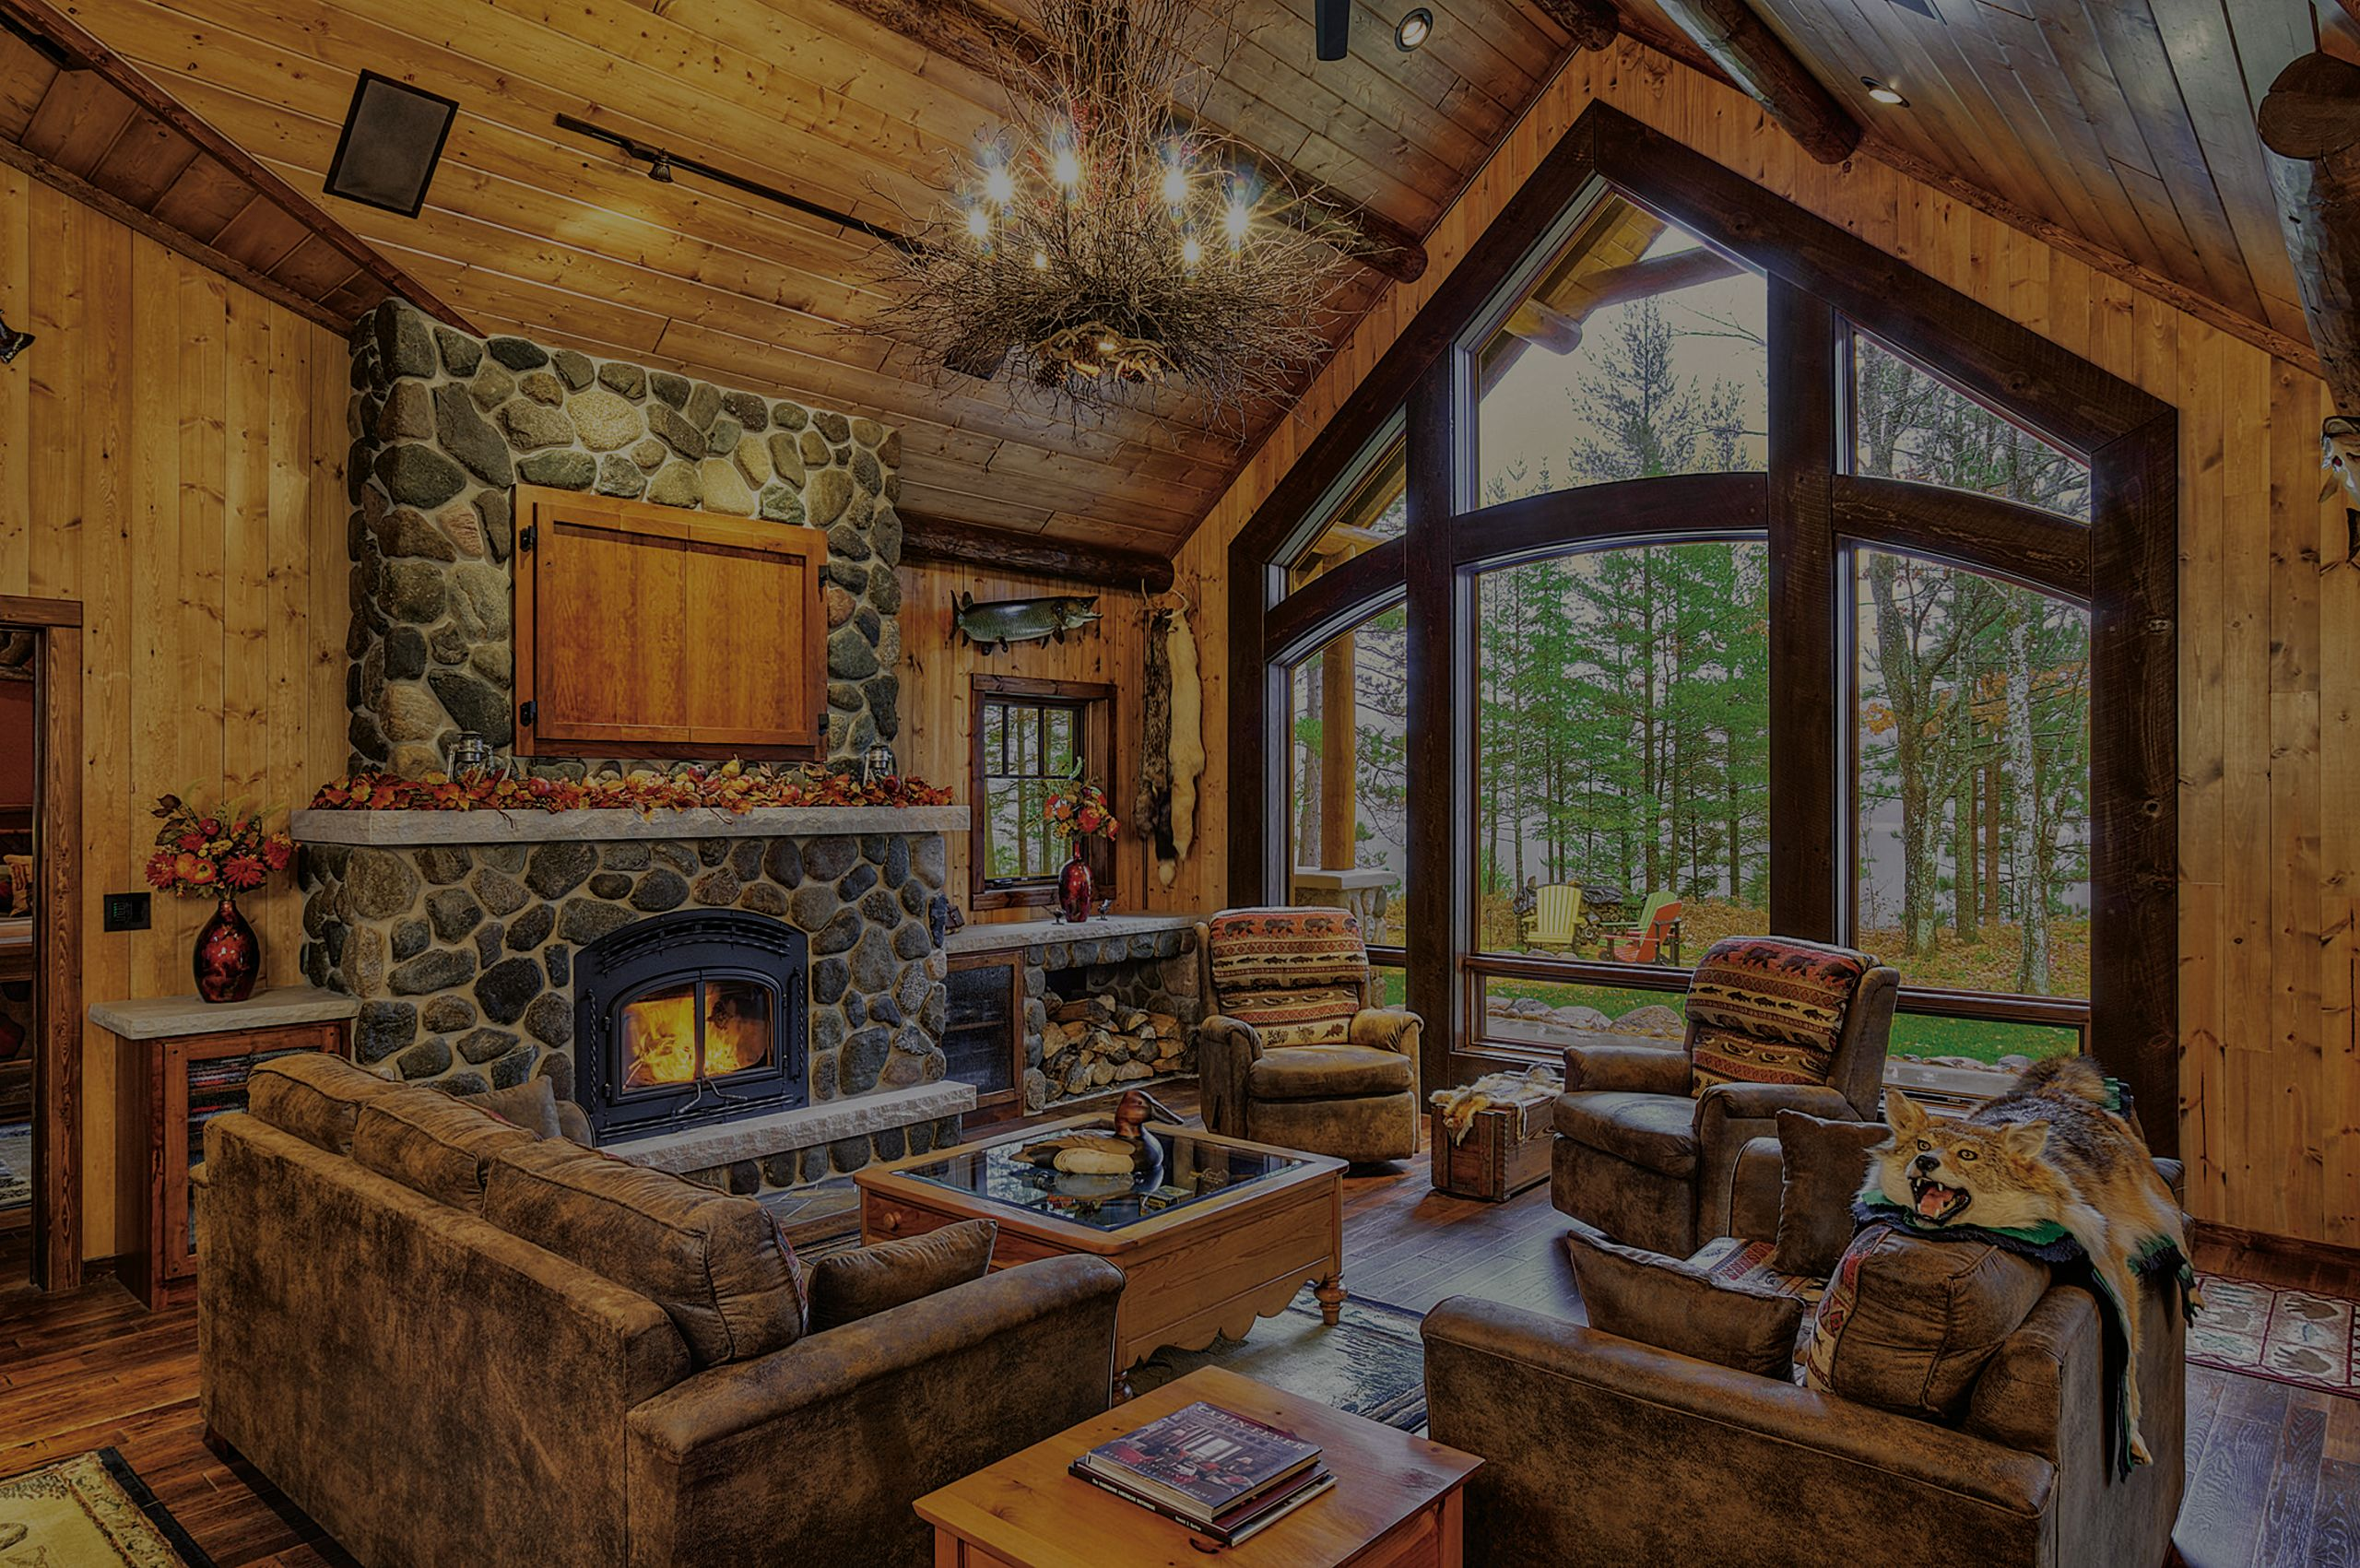 Tips for Choosing a Vacation Home